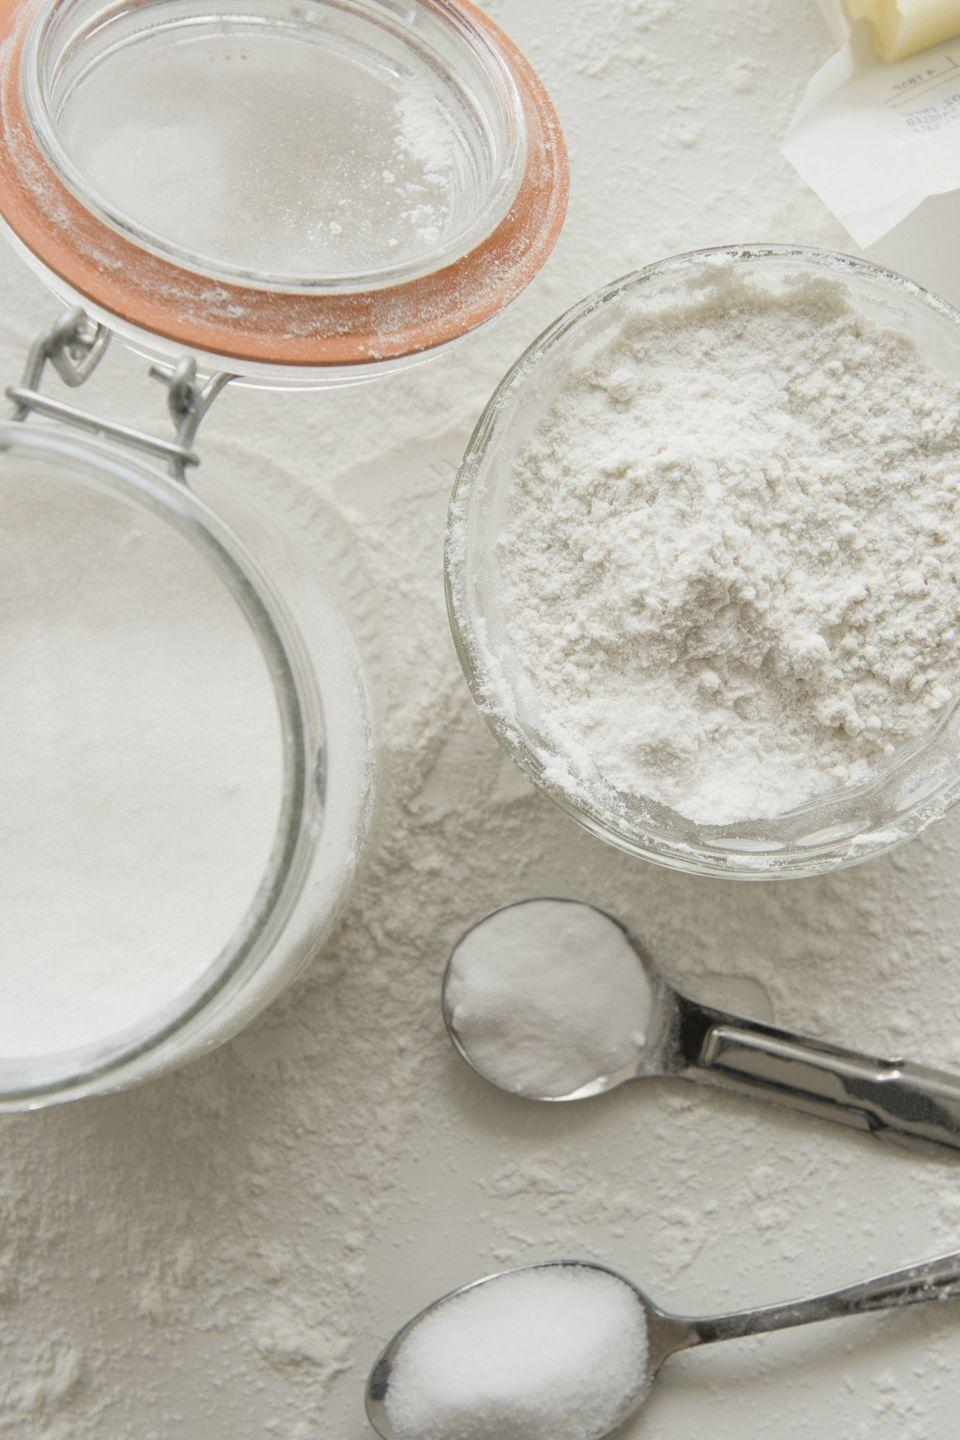 """<p>Put countertop flour and sugar canisters on a lower slide-out <a href=""""https://www.womansday.com/home/organizing-cleaning/tips/g738/organize-kitchen-pantry/"""" rel=""""nofollow noopener"""" target=""""_blank"""" data-ylk=""""slk:cabinet shelf"""" class=""""link rapid-noclick-resp"""">cabinet shelf</a>. You could even use a sturdy <span class=""""itxtrst itxtrsta itxthook"""">baking s</span>heet or plastic tray as a makeshift slide-out.  </p><p><strong><a class=""""link rapid-noclick-resp"""" href=""""https://www.amazon.com/Oggi-4-Piece-Canister-Airtight-Spoons-Set/dp/B0002T4ZL4/?tag=syn-yahoo-20&ascsubtag=%5Bartid%7C10070.g.3310%5Bsrc%7Cyahoo-us"""" rel=""""nofollow noopener"""" target=""""_blank"""" data-ylk=""""slk:SHOP SUGAR CANISTERS"""">SHOP SUGAR CANISTERS</a></strong></p>"""